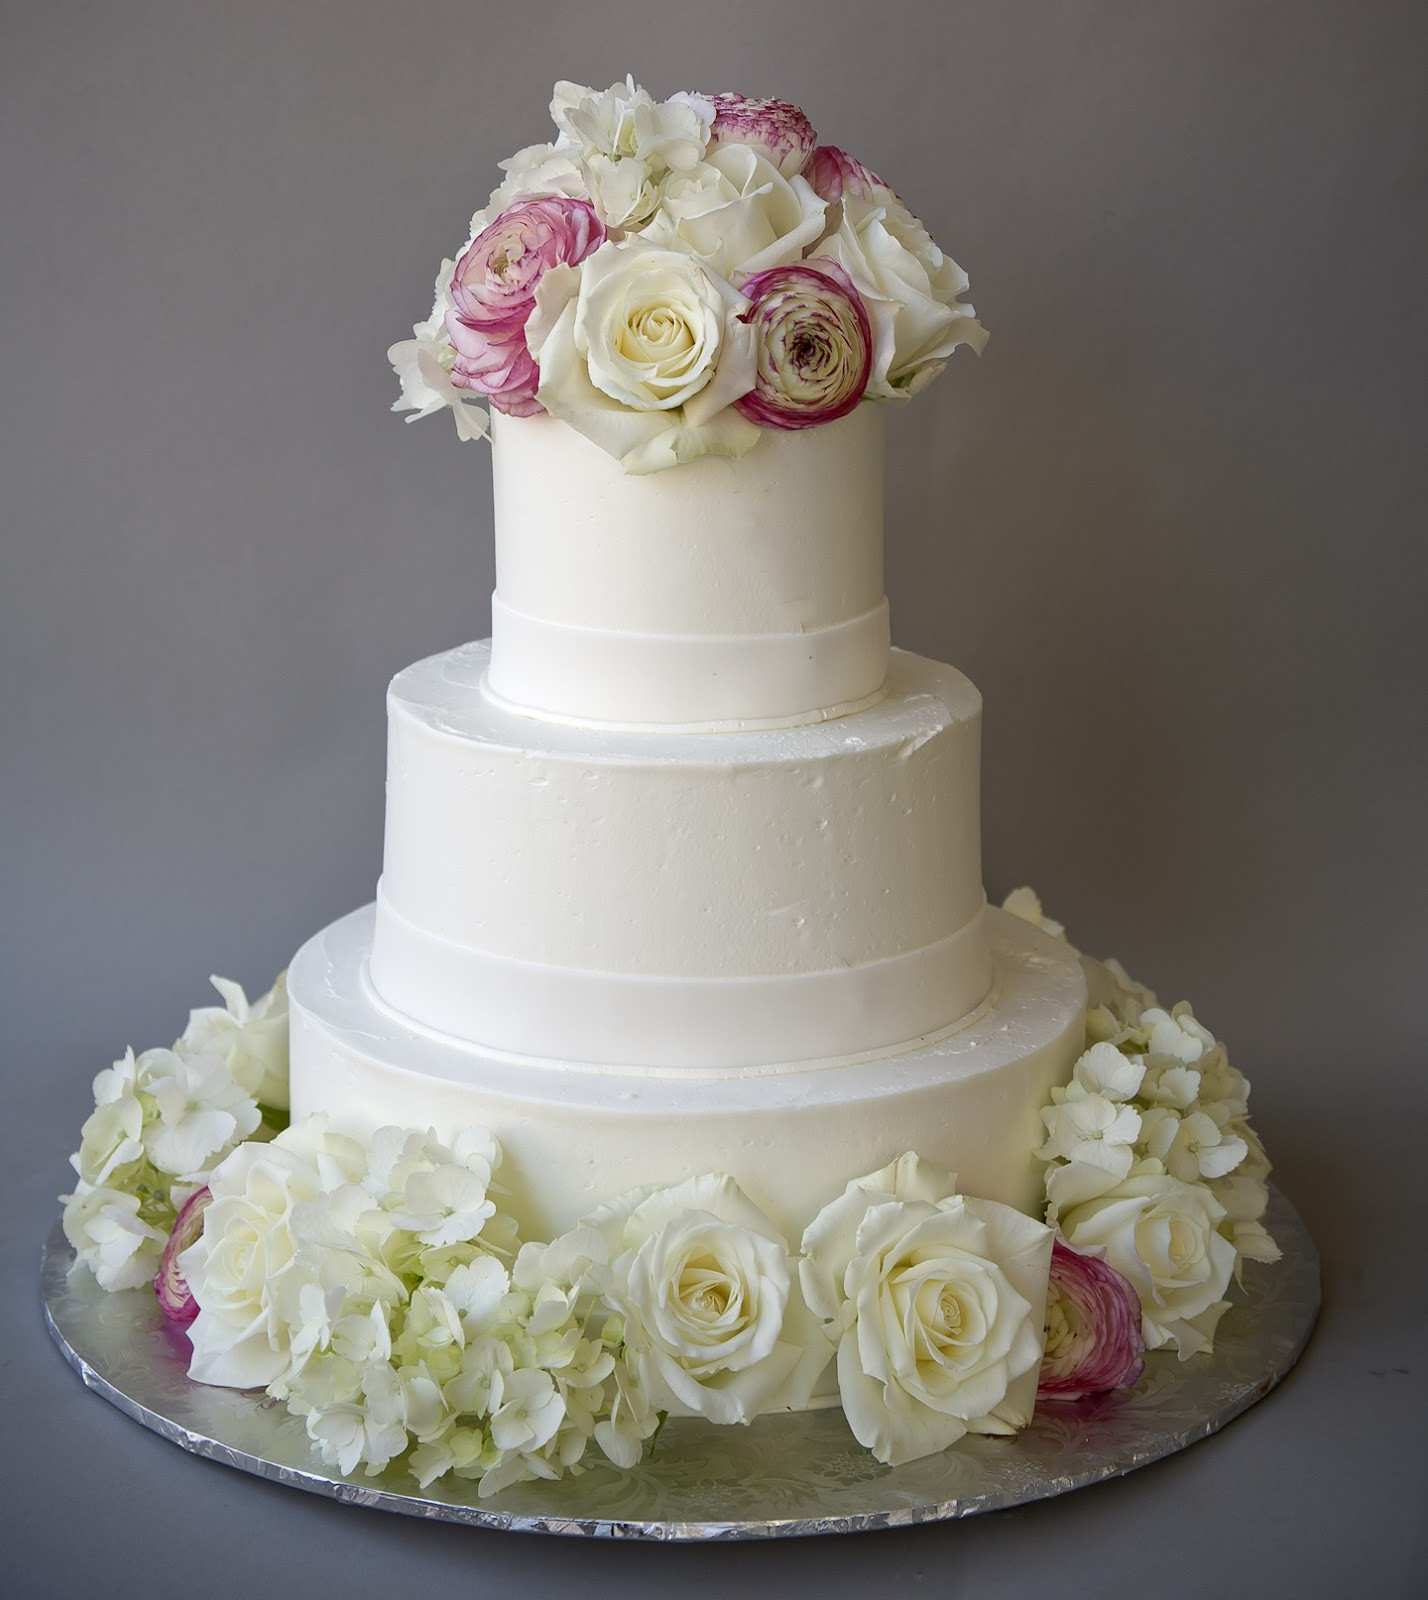 Wedding Cakes With Real Flowers  Real flowers on wedding cake idea in 2017